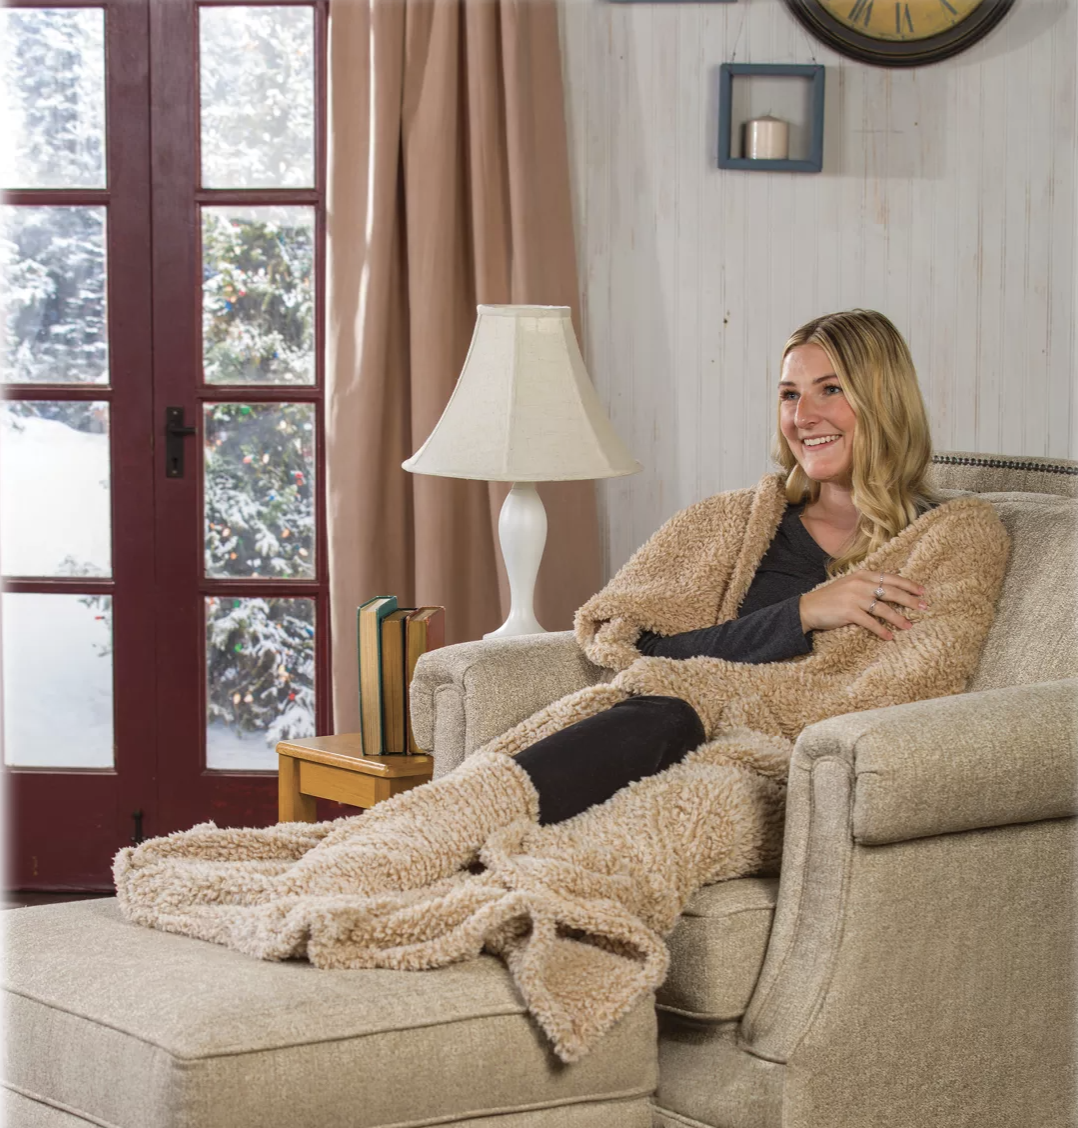 Model with the beige blanket wrapped around them and their feet in the deep pockets at the bottom